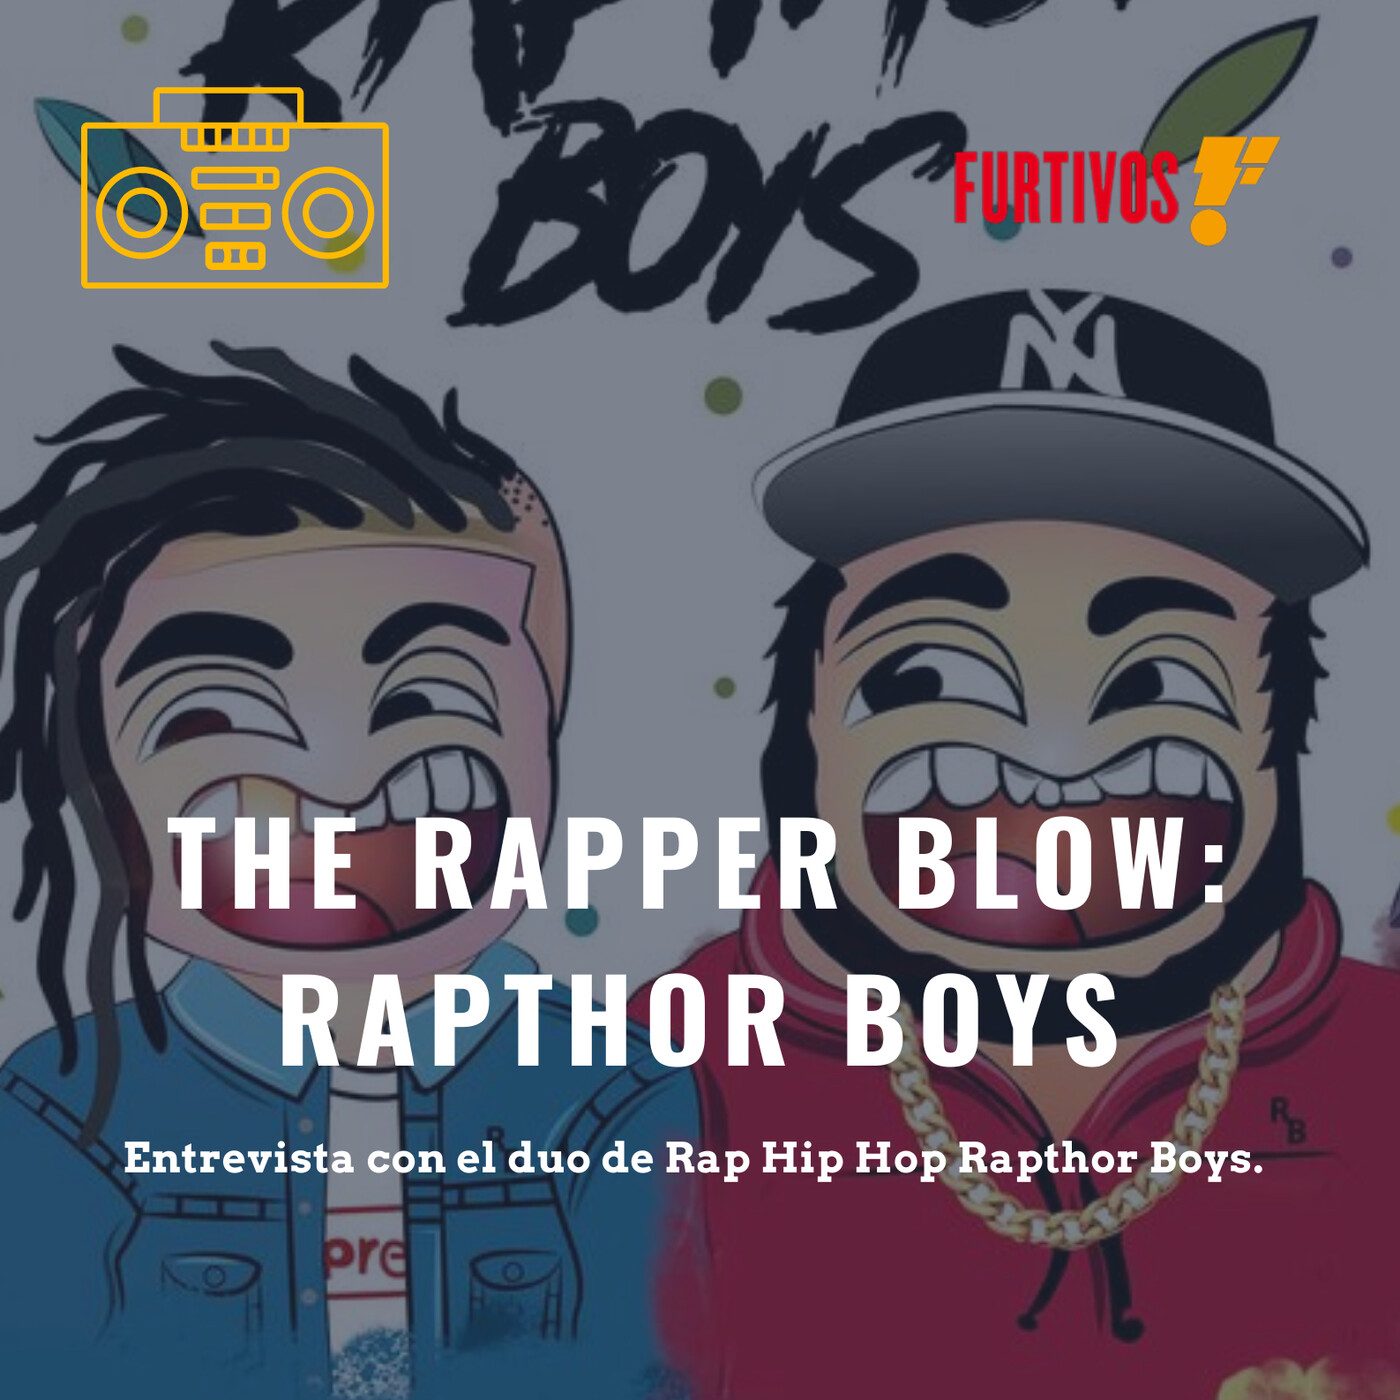 The rapper blow: Raptor Boys.